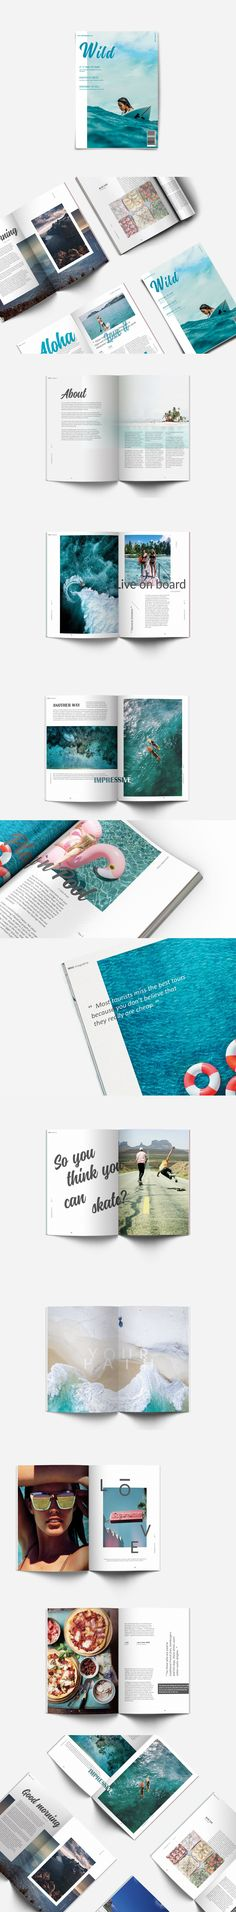 Wild - travel magazine design photography tumblr cover layout beach surfing adventure ocean waves